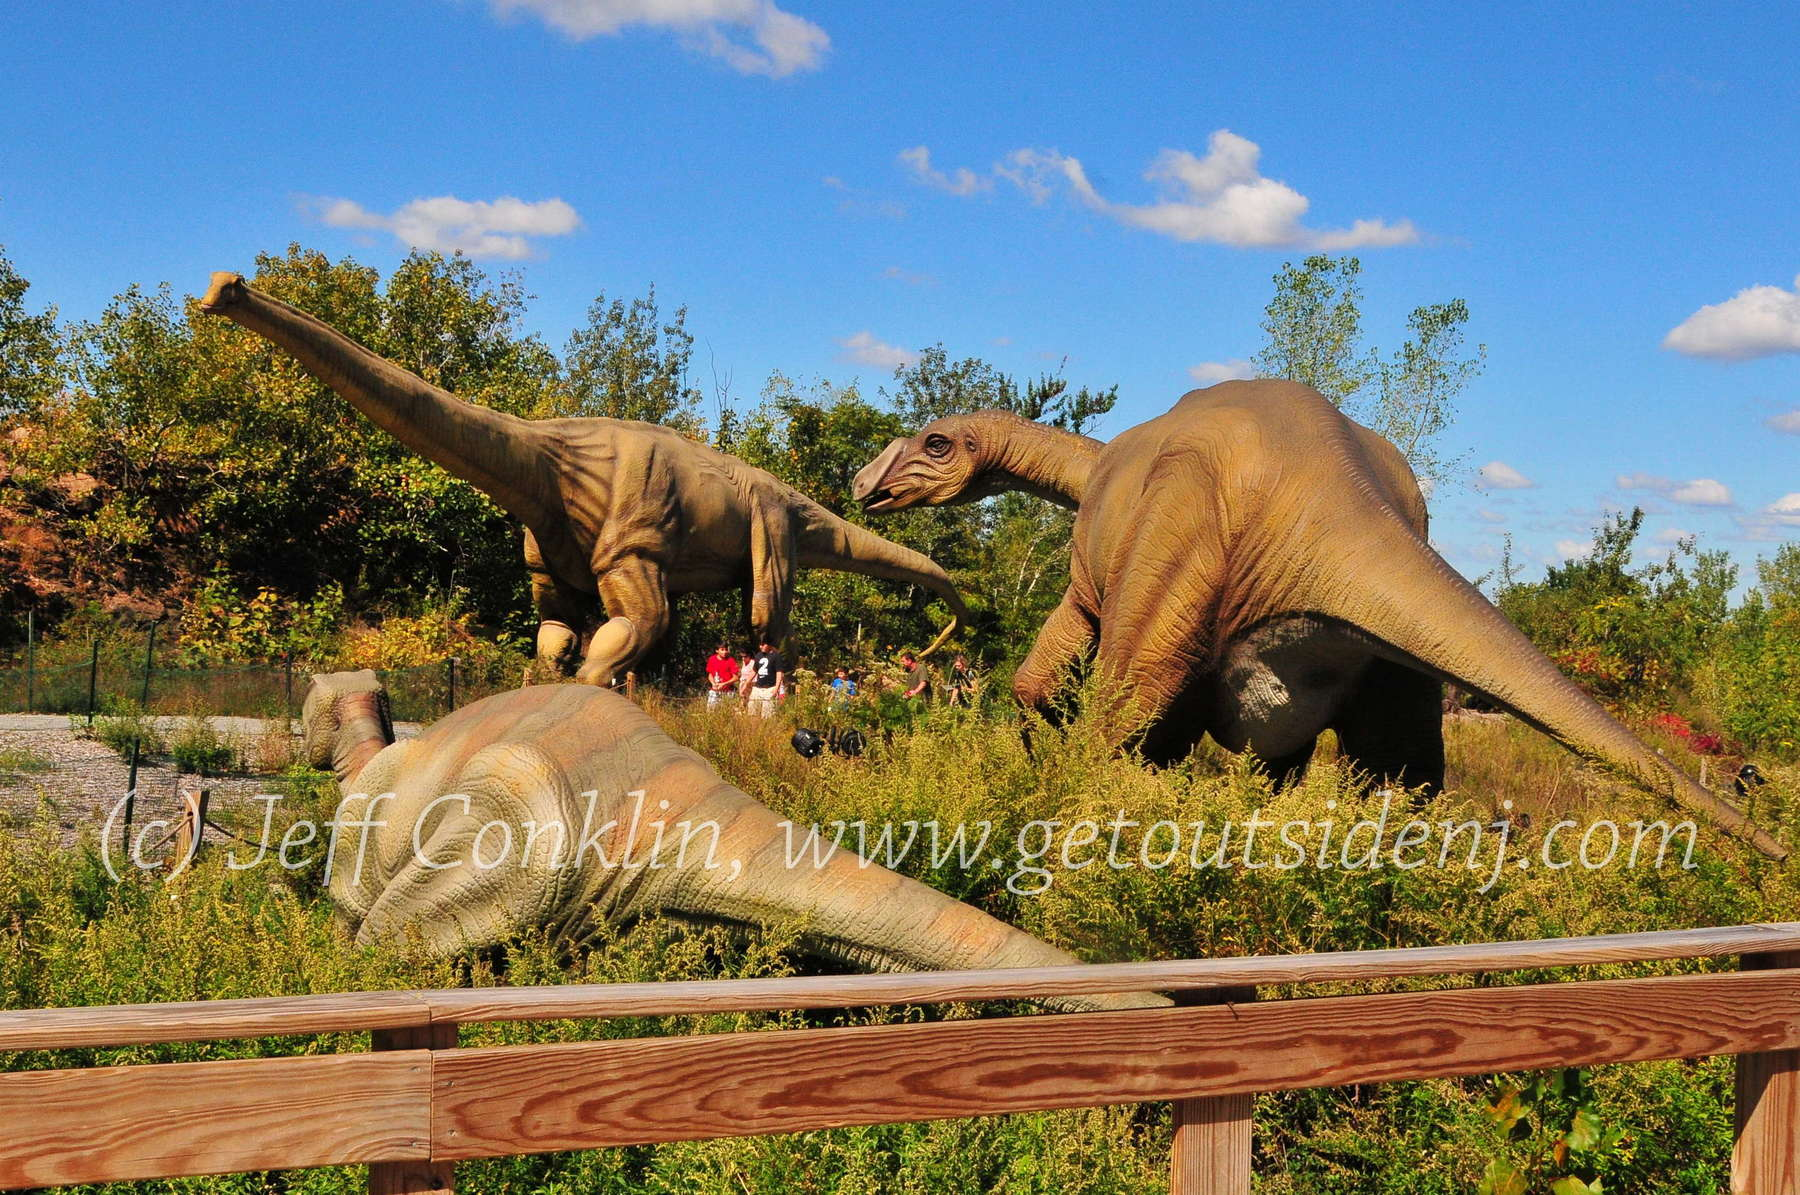 Field Station Dinosaurs 40 Fort Lee Rd Leonia Nj